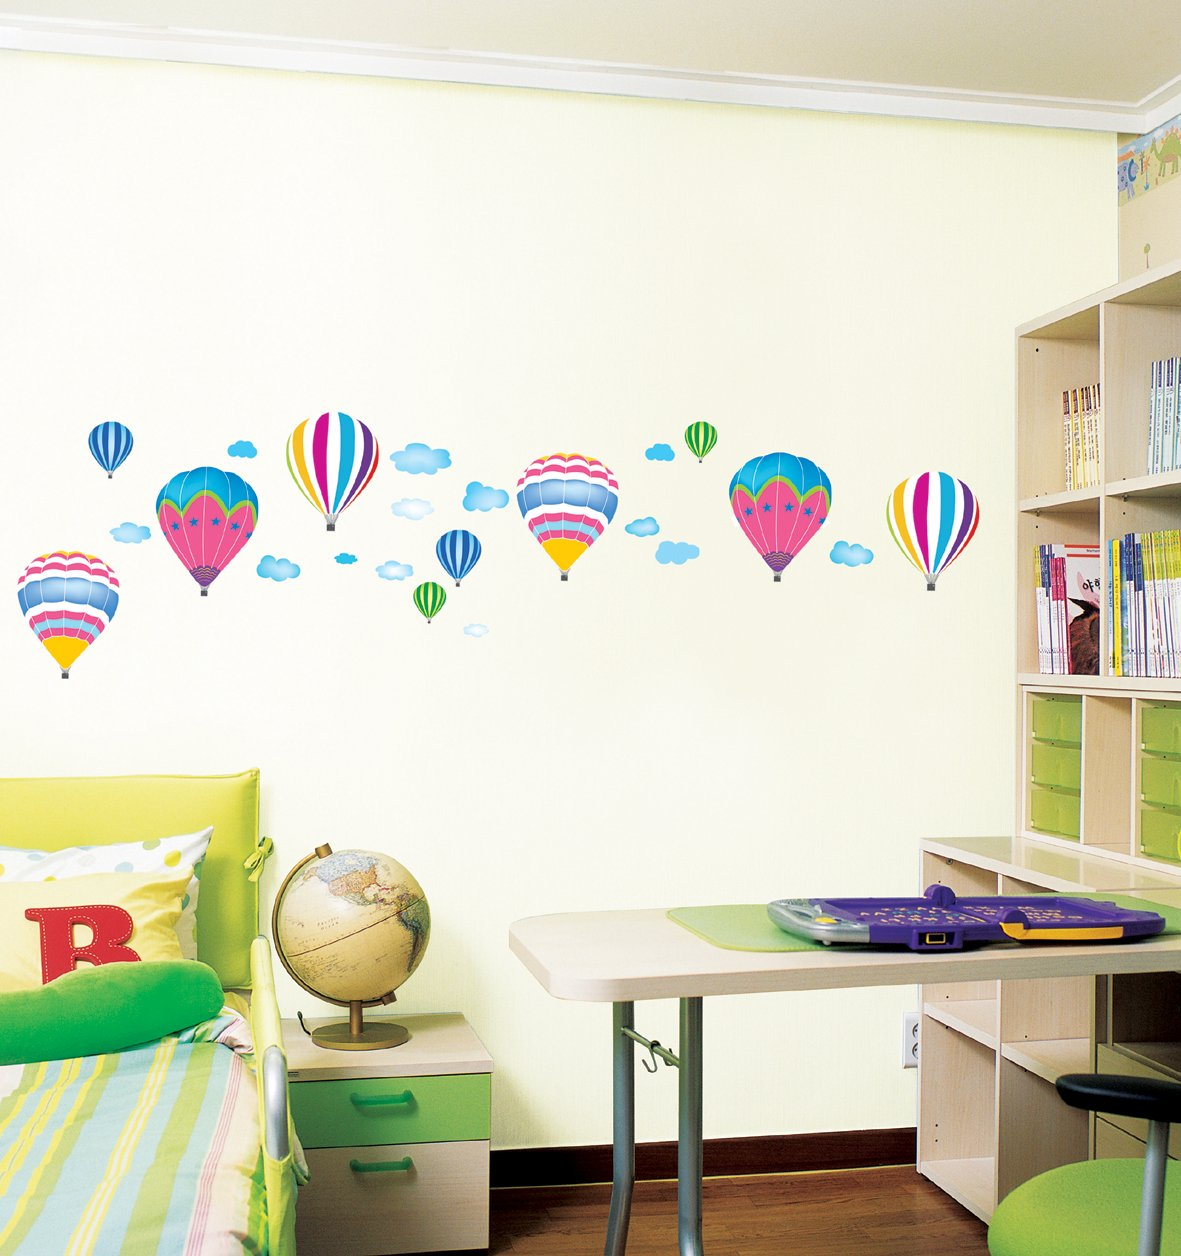 Amazon.com: Reusable Decoration Wall Sticker Decal   Hot Air Balloons In  The Sky: Home U0026 Kitchen